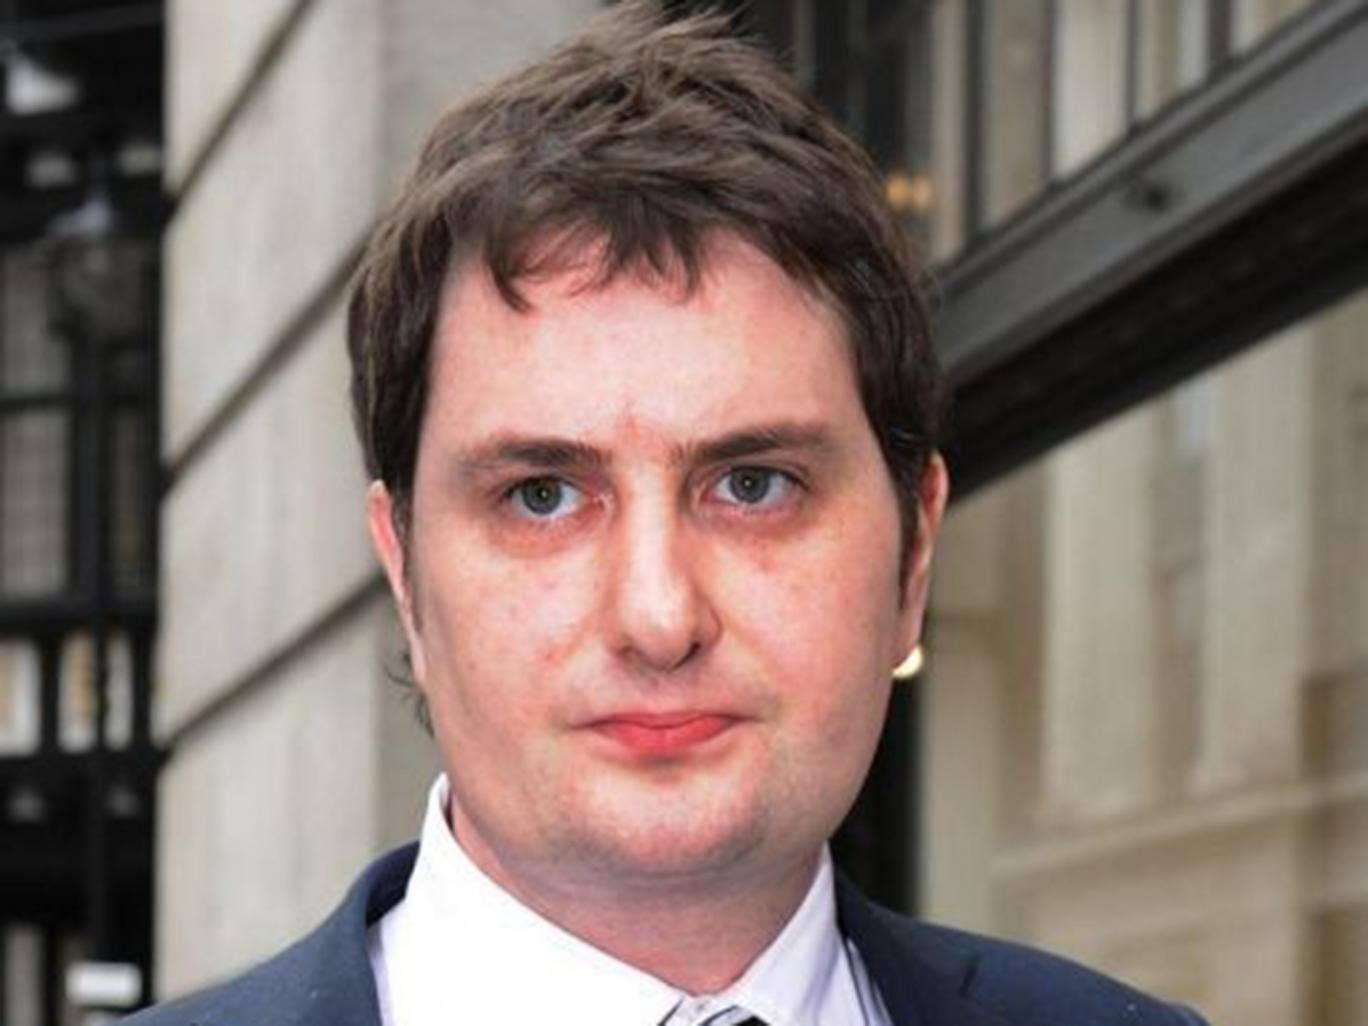 Dr Adam Osborne has admitted he had an 'irresponsible' emotional and sexual relationship with the woman